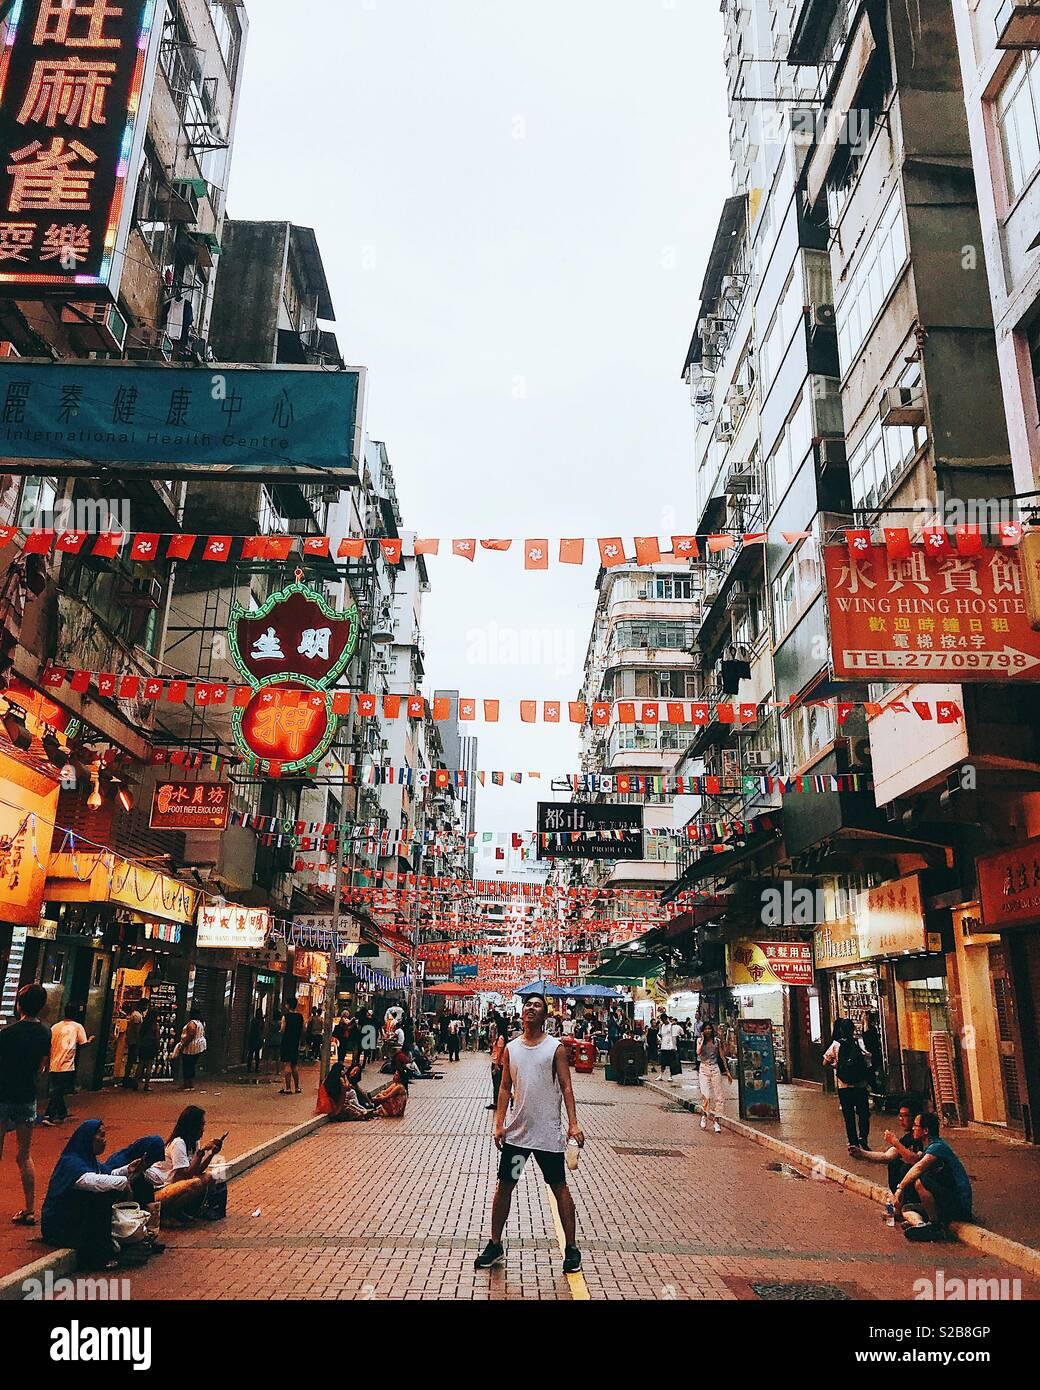 Where can you find better street markets than in Hong Kong? - Stock Image